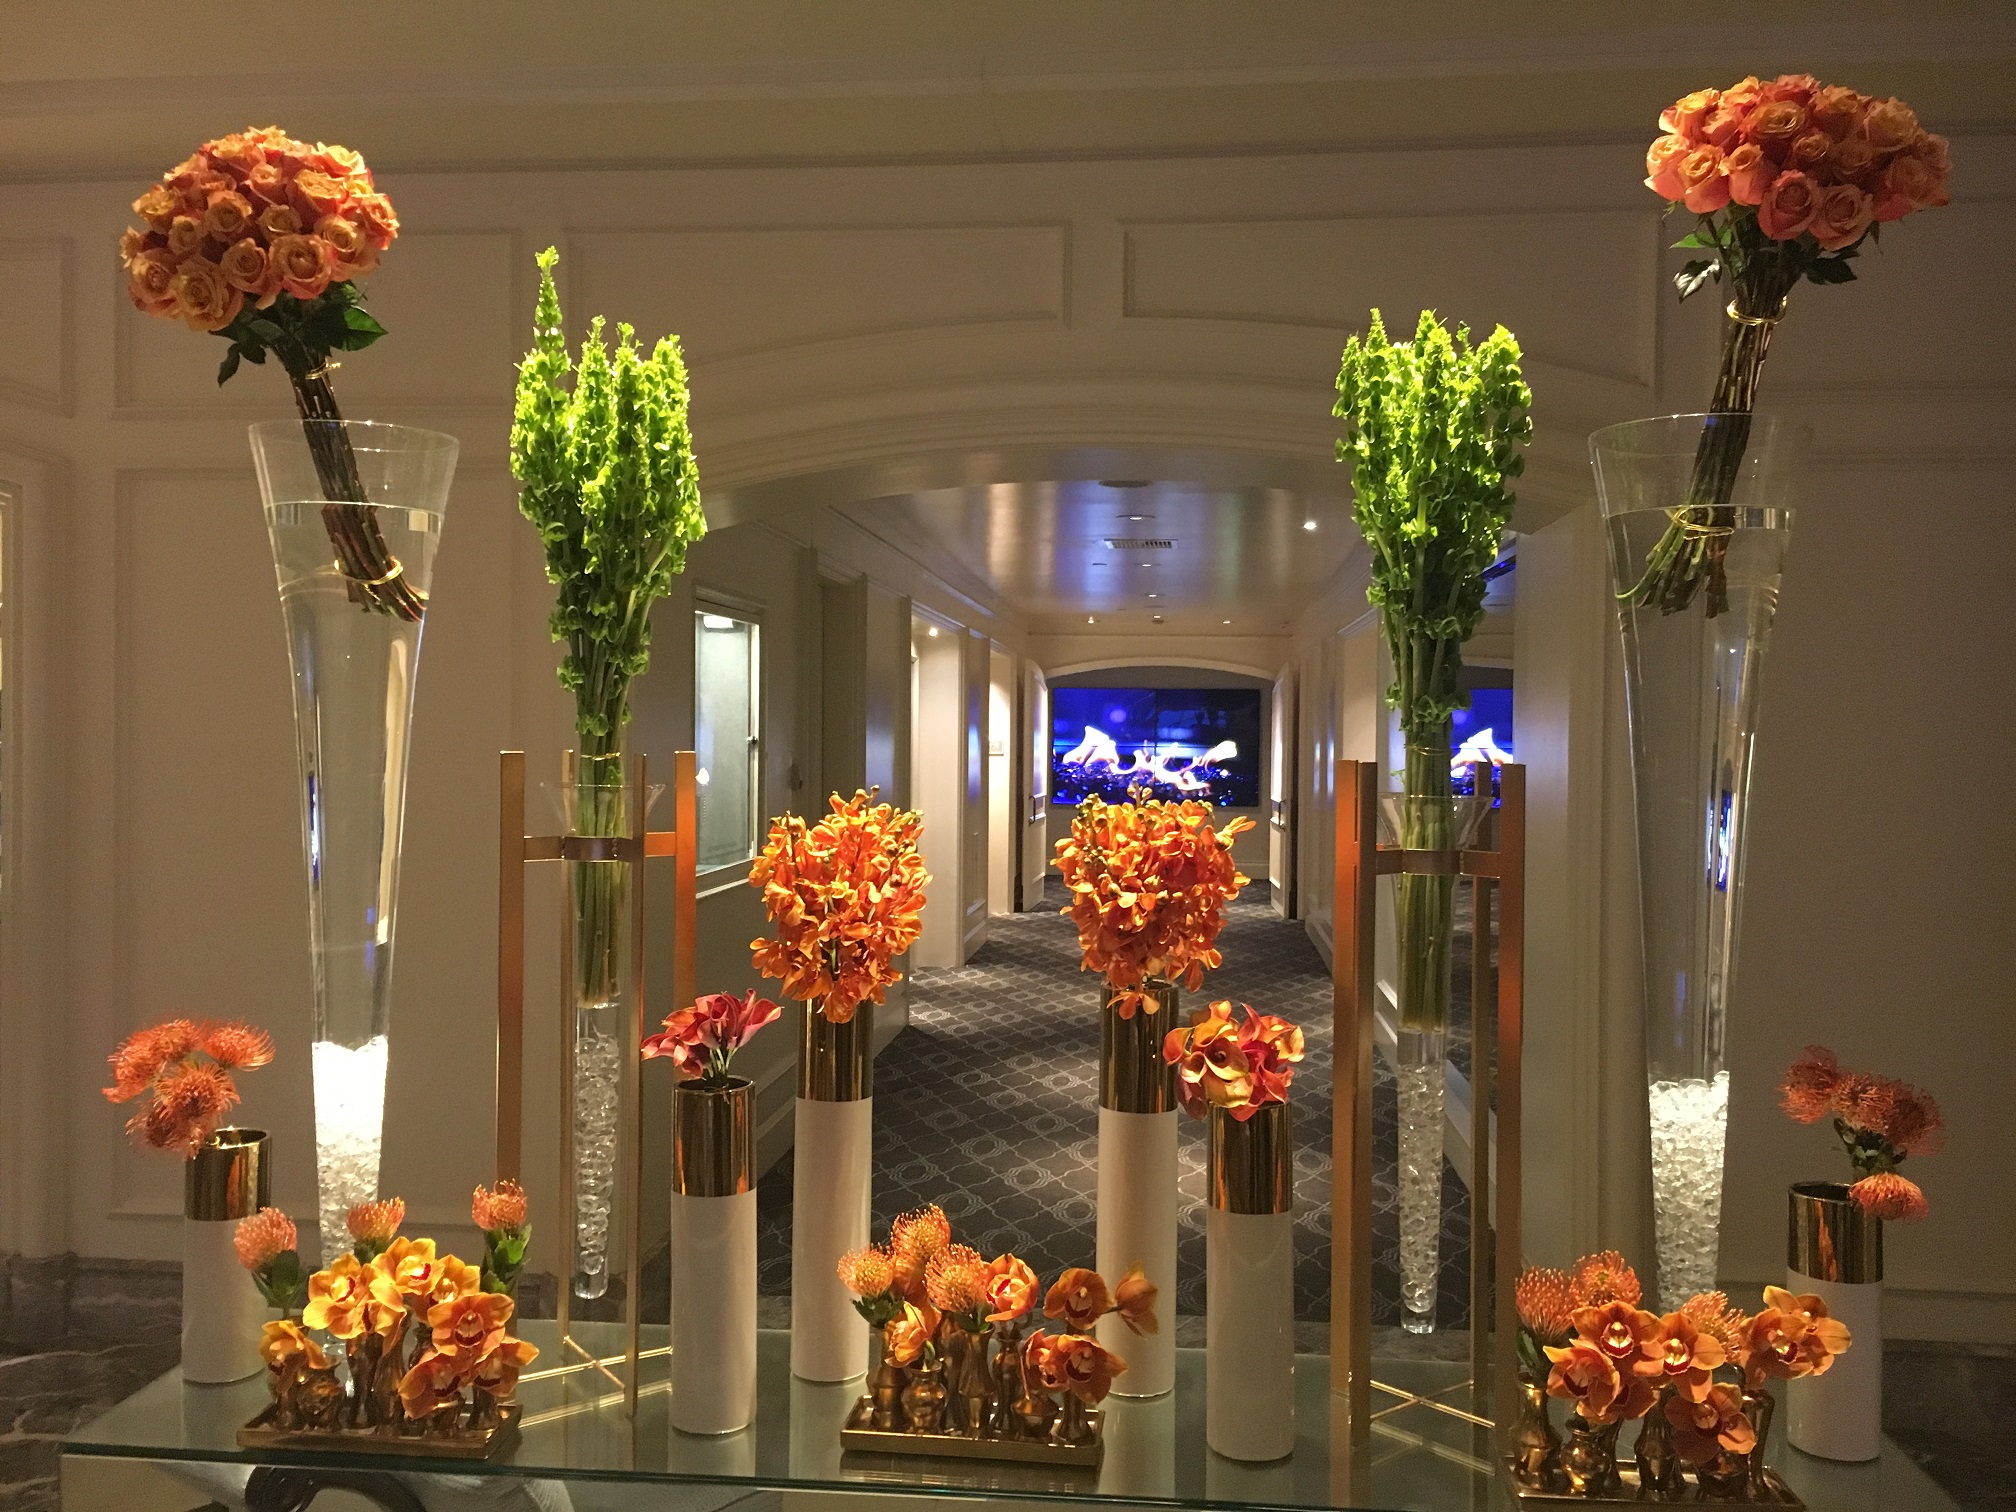 The Ritz Carlton Lobby